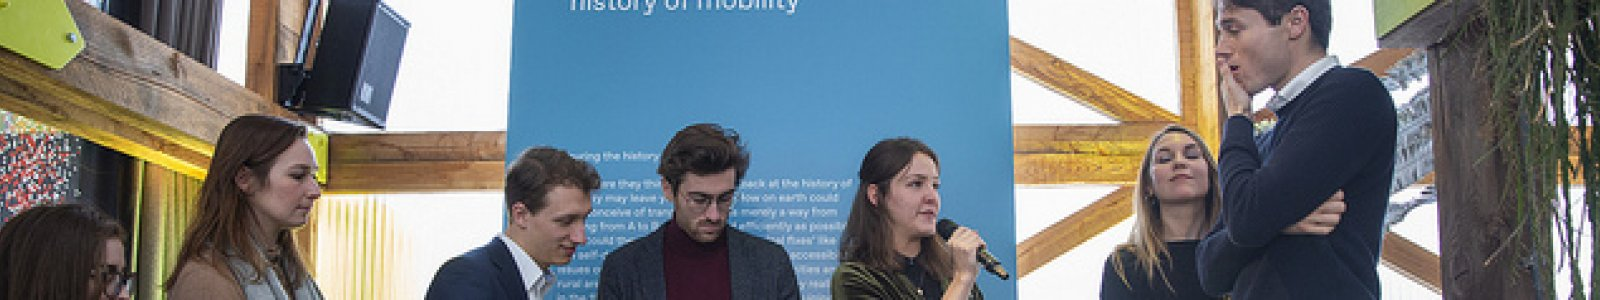 MobilityMuseum2050_opening.jpg